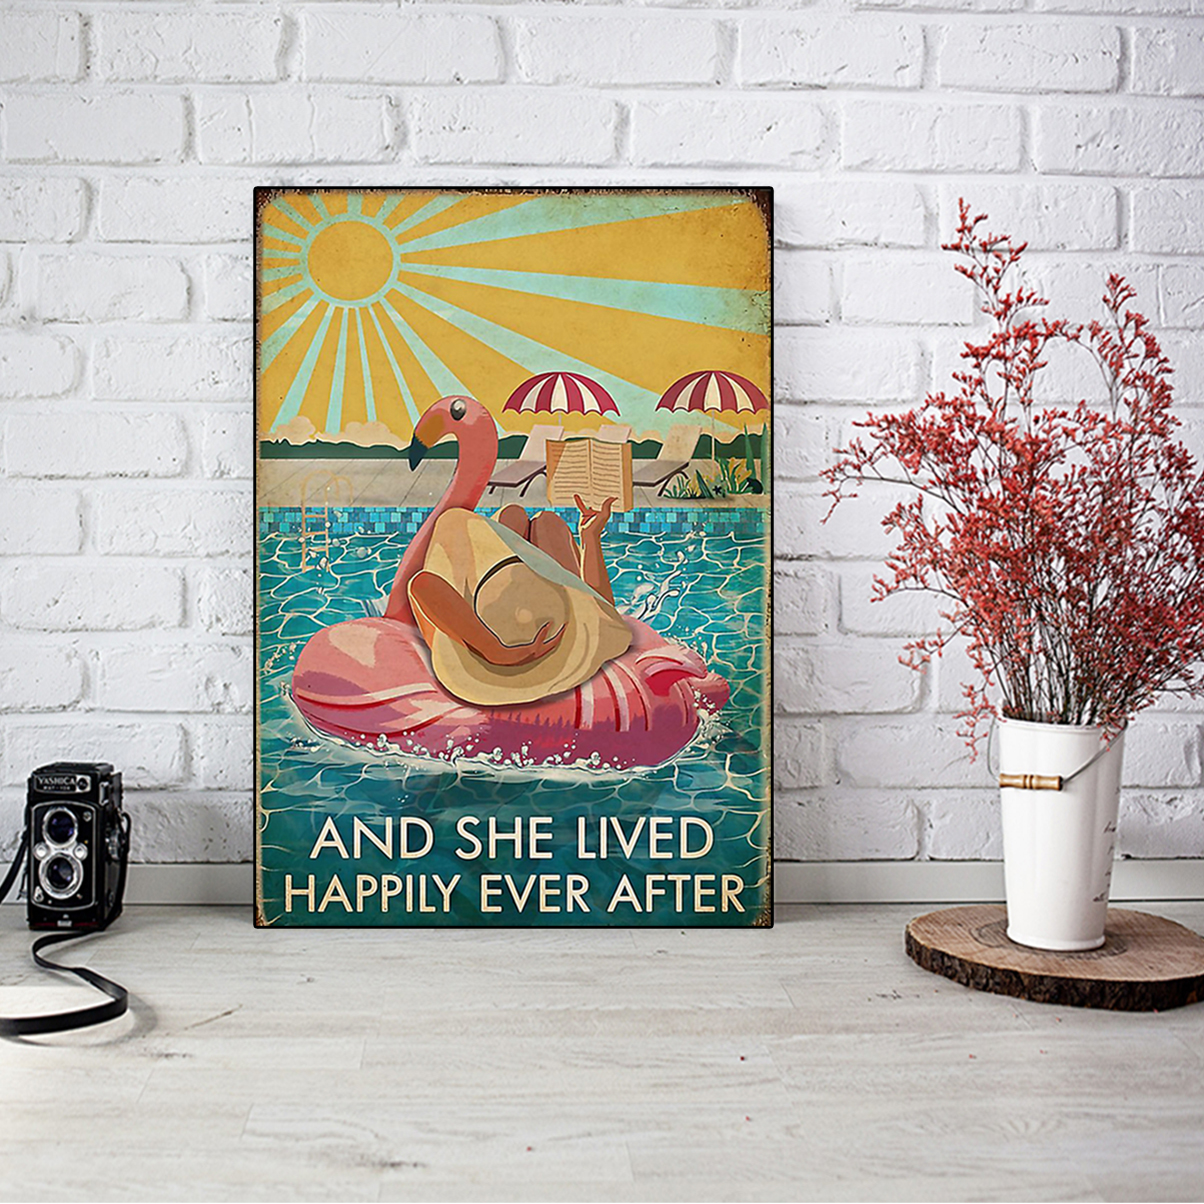 Flamingo and she lived happily ever after book poster A1